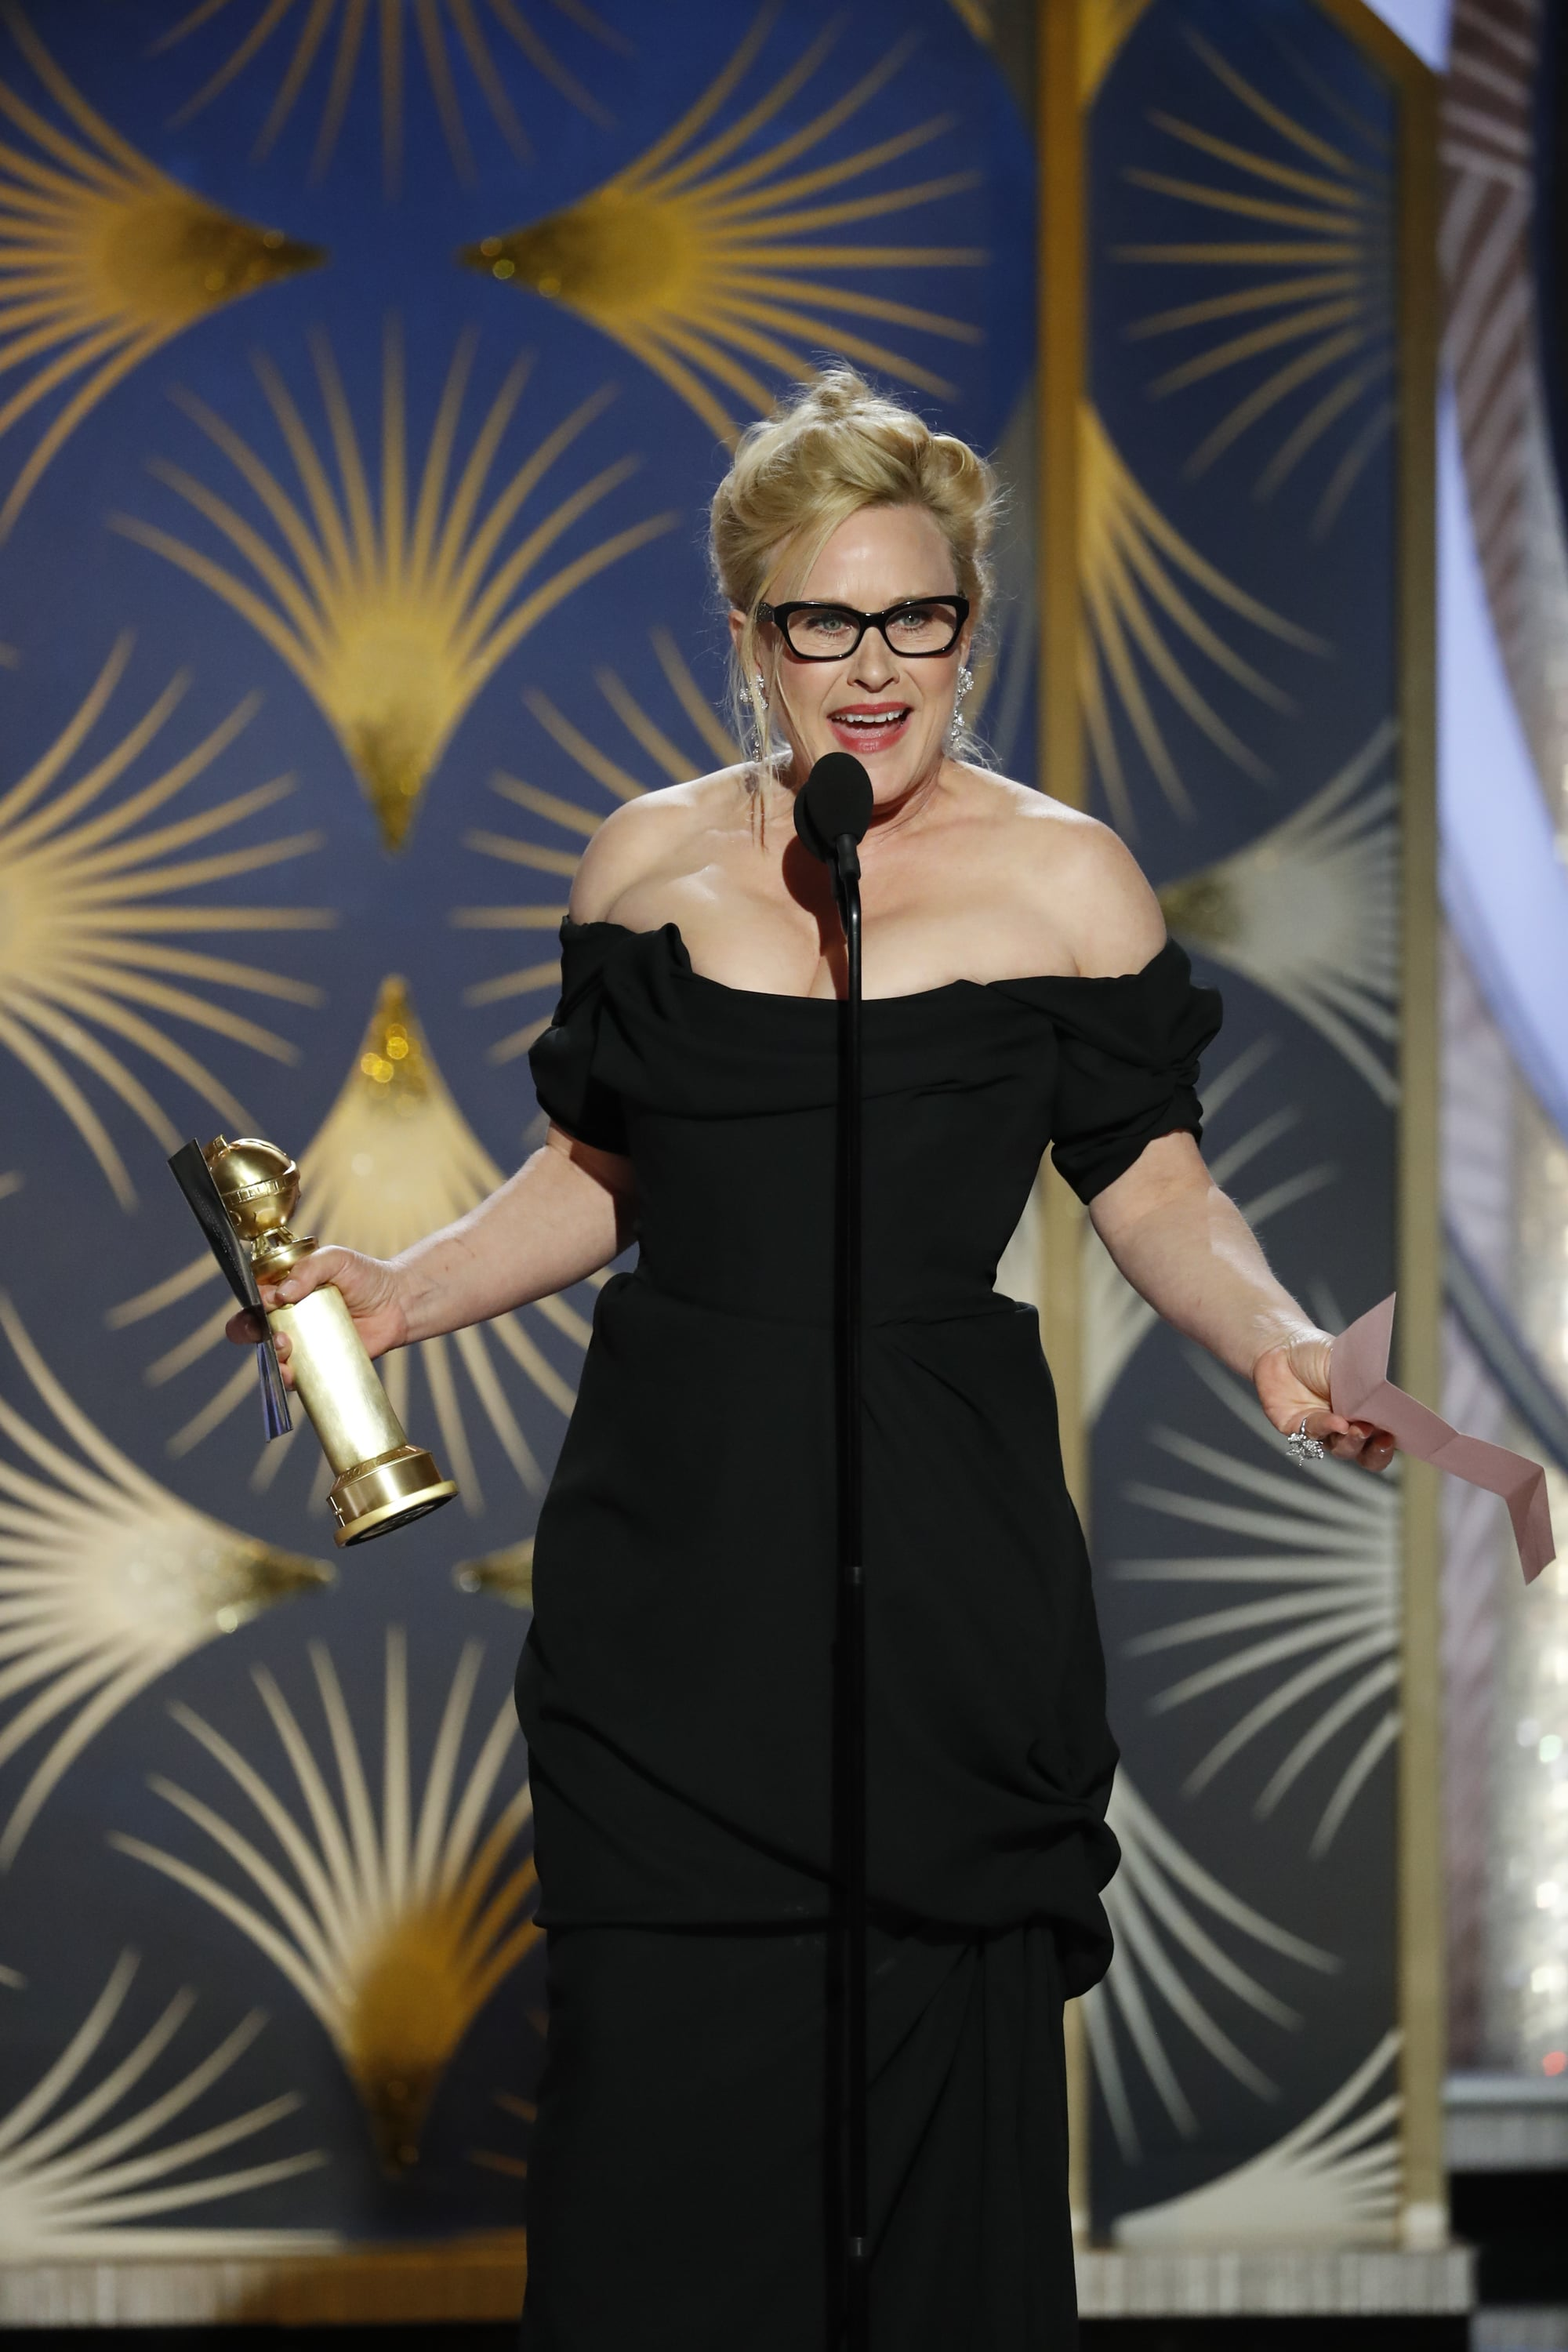 BEVERLY HILLS, CALIFORNIA - JANUARY 06: In this handout photo provided by NBCUniversal, Patricia Arquette from